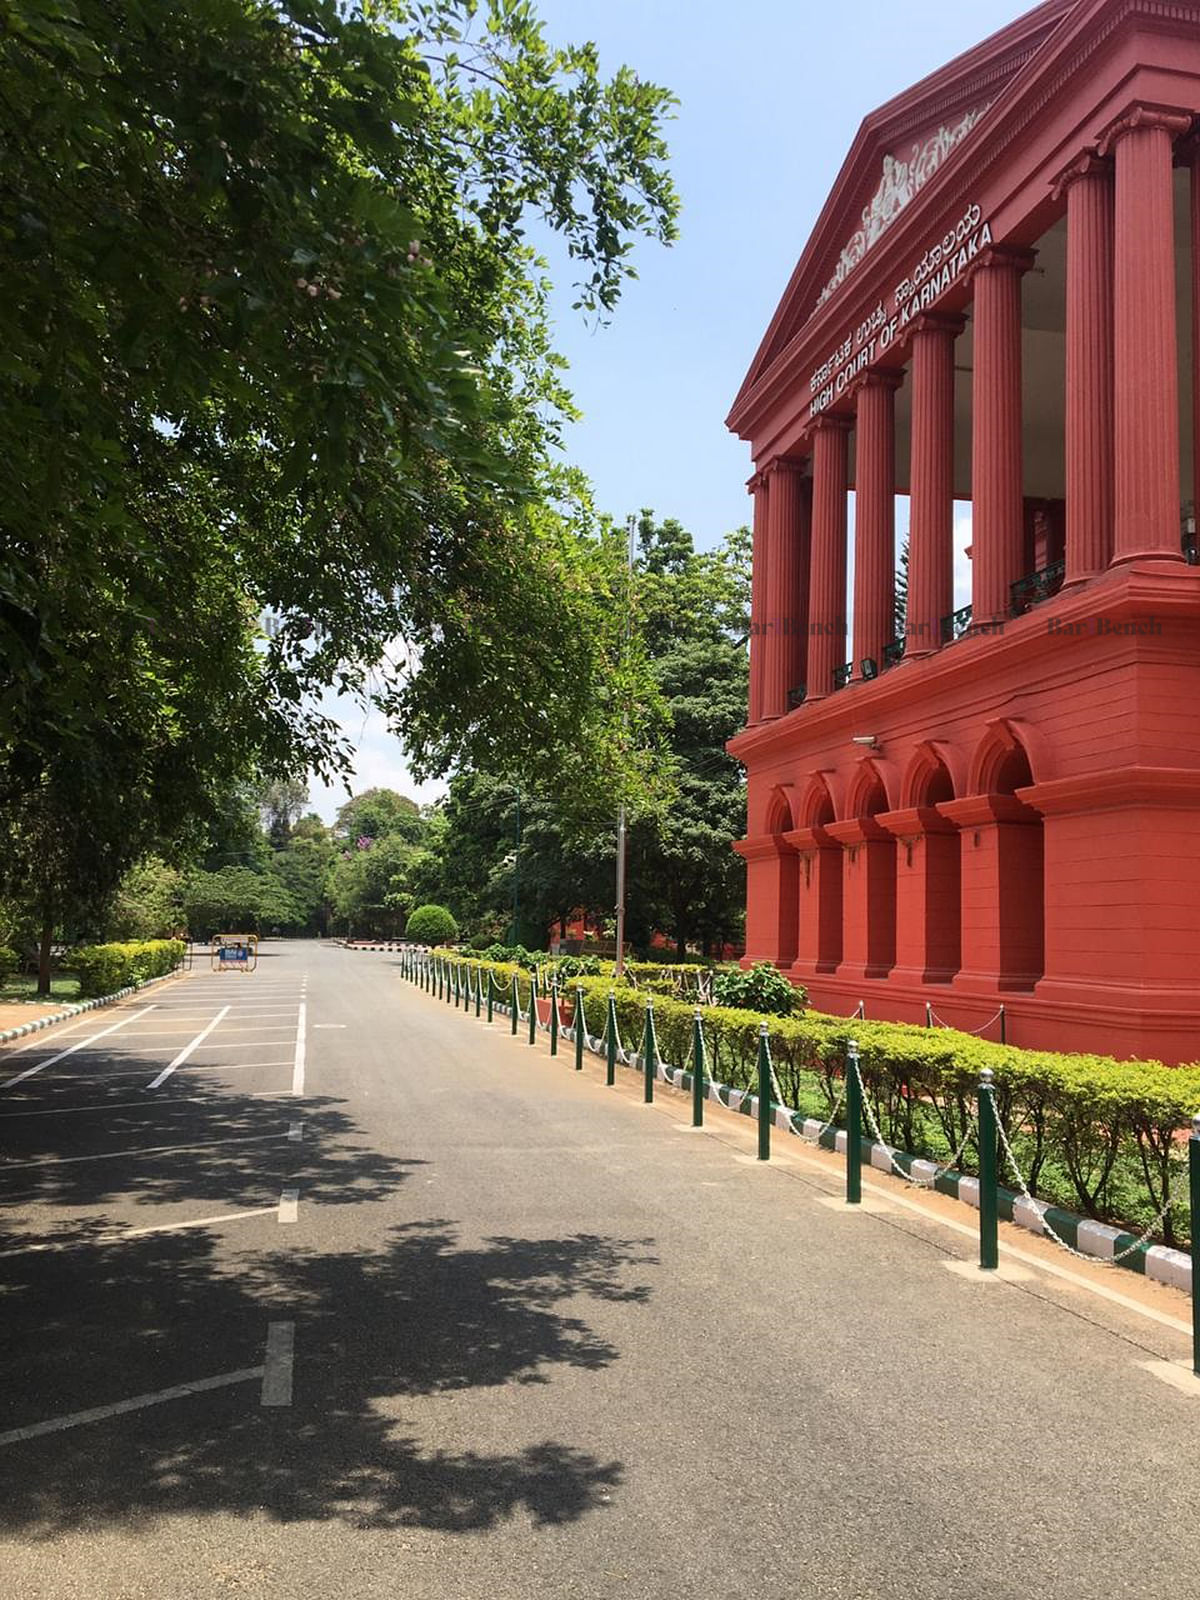 Karnataka HC stays notification deferring payment of Variable Dearness Allowance to workers from April 1, 2020 to March 31, 2021